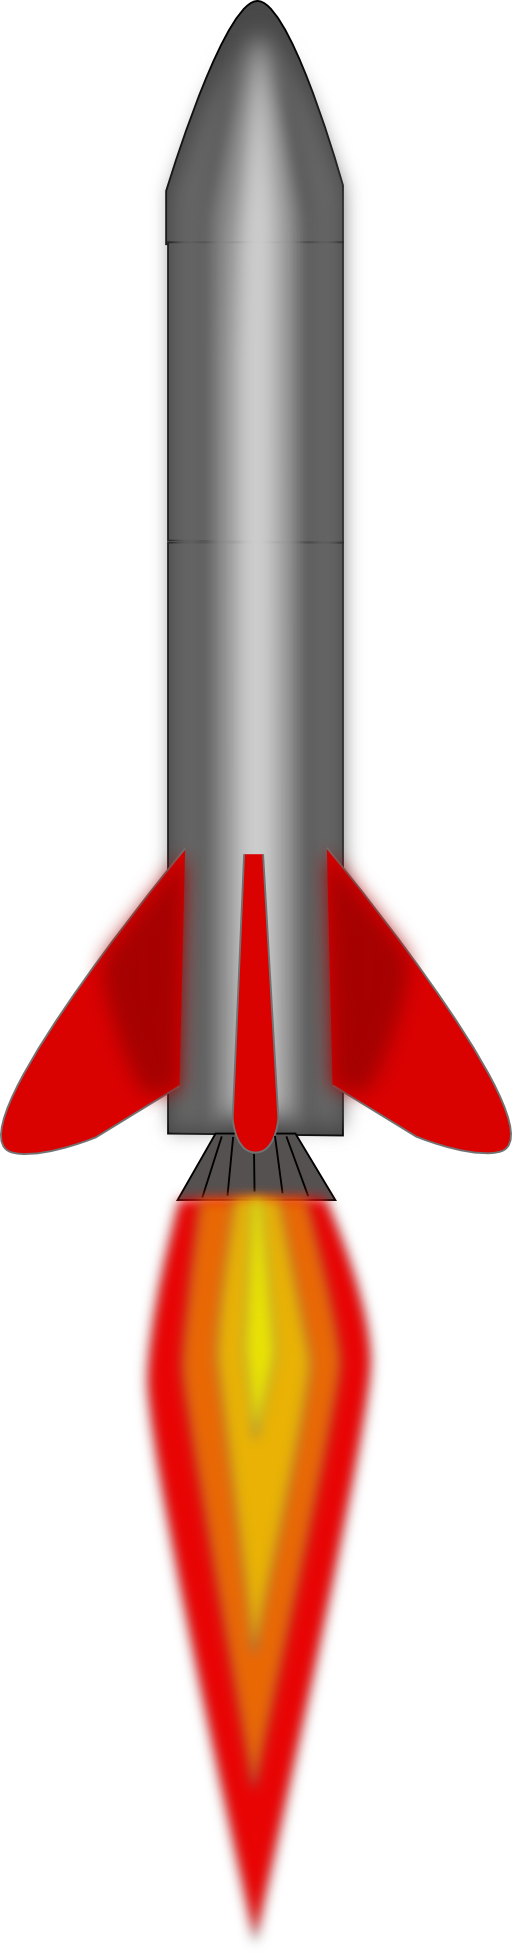 Spaceship clipart rocket booster. Launch group art